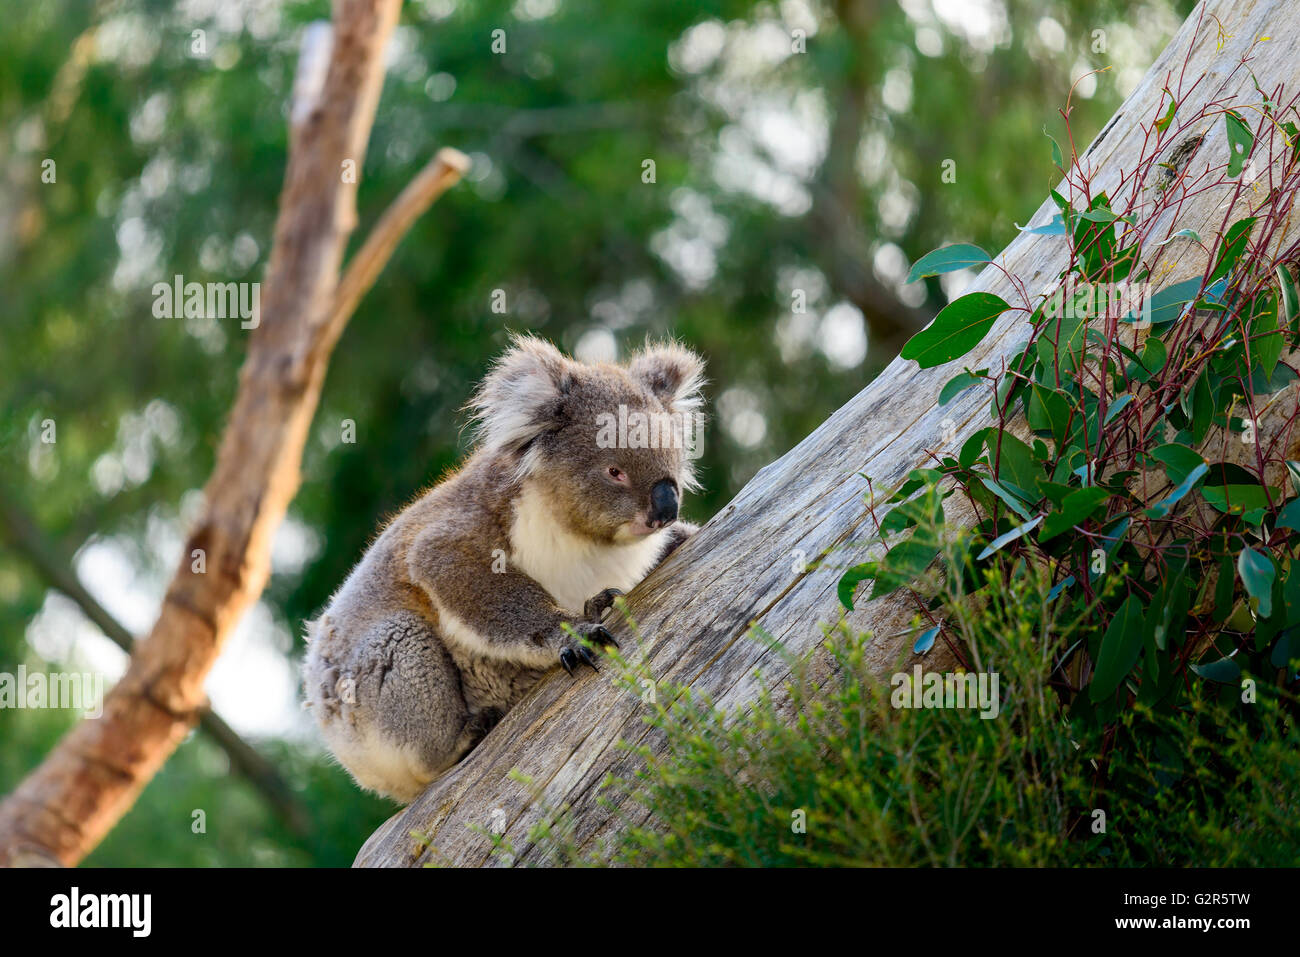 Wild koala bear climbing up a tree in australian outback - Stock Image